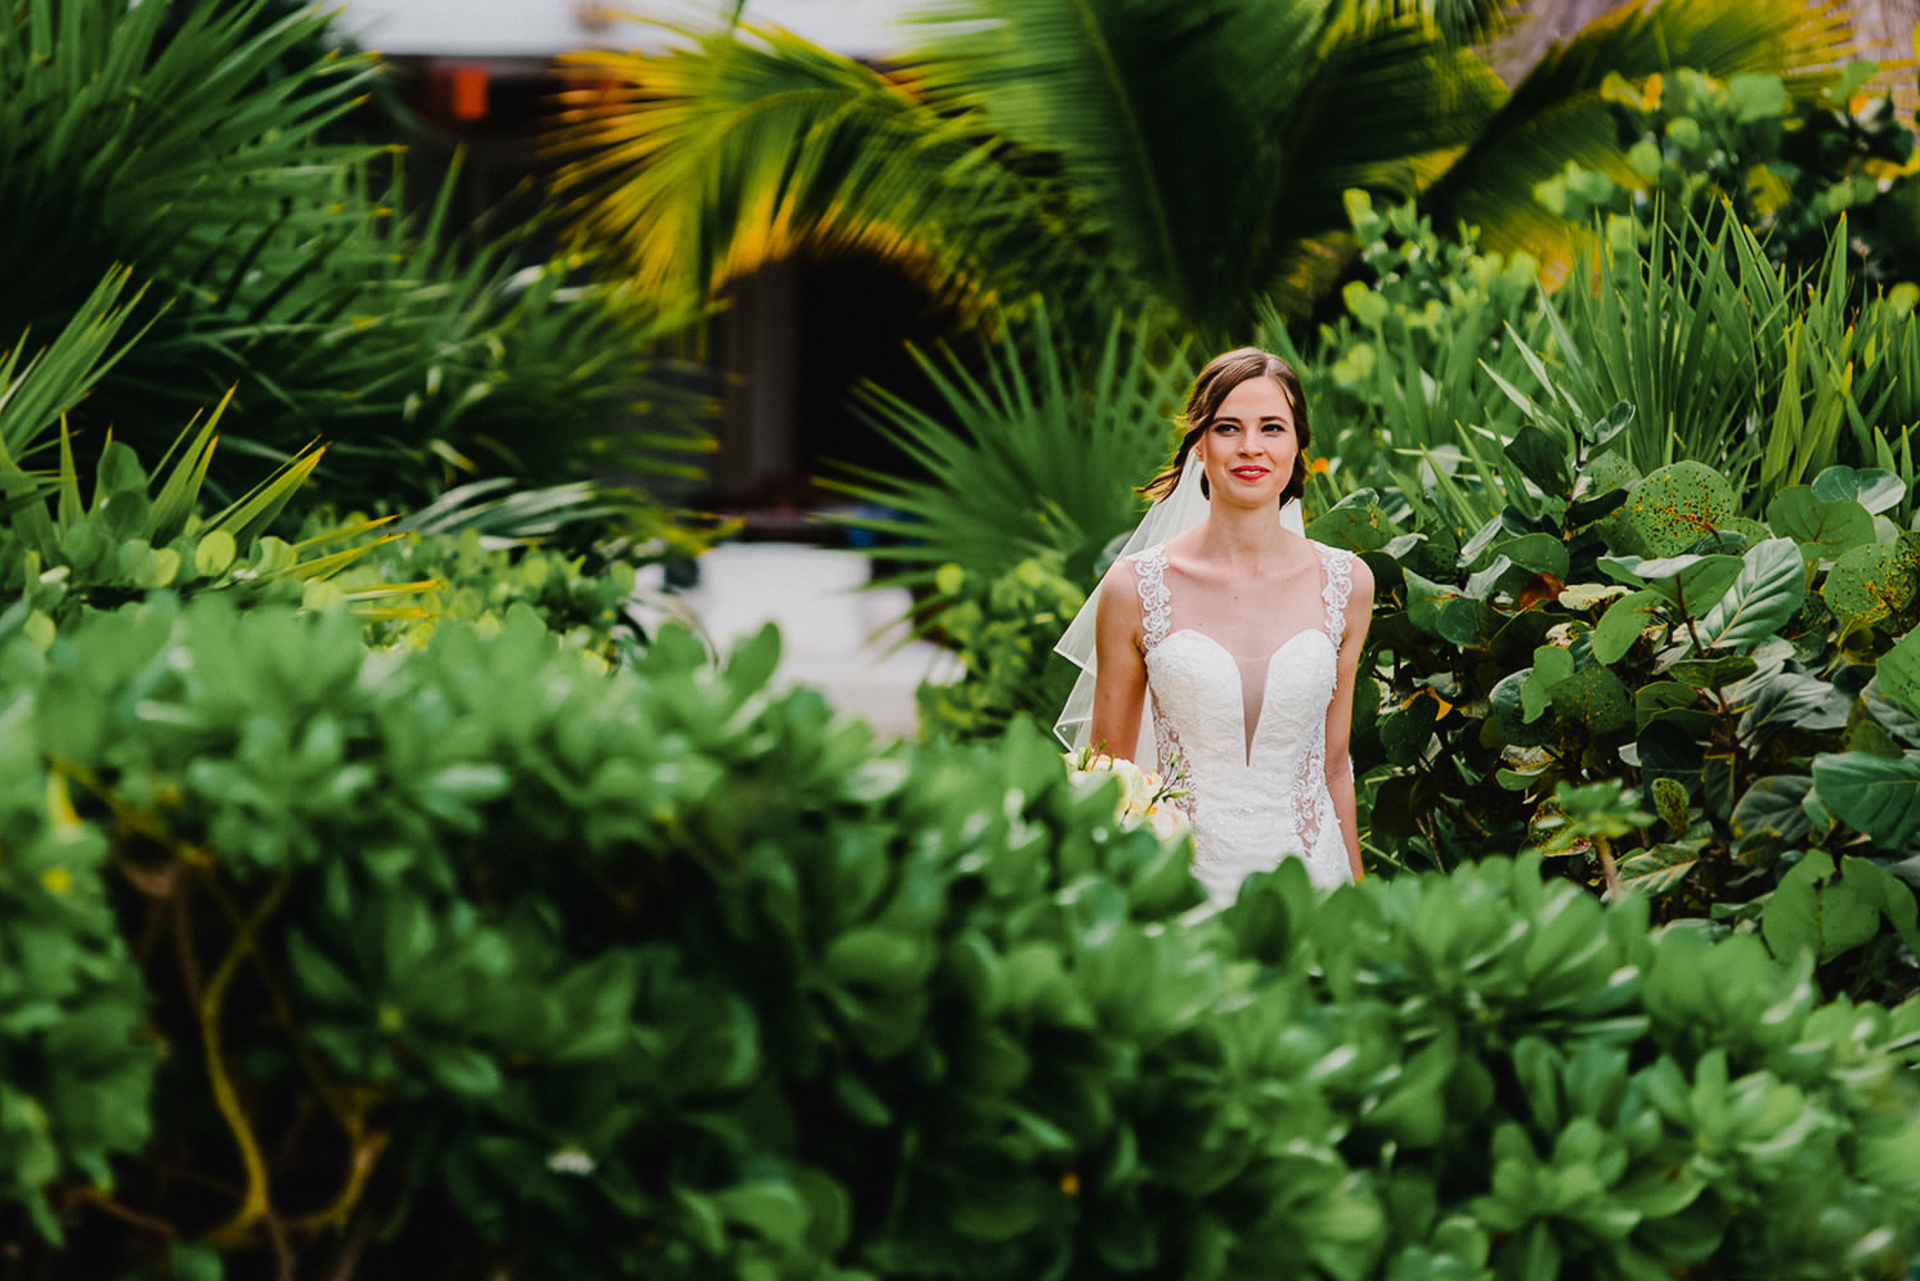 Excellence Playa Mujeres, Cancun Mexico Elopement Bride Image | the bride strolls through the vibrant foliage